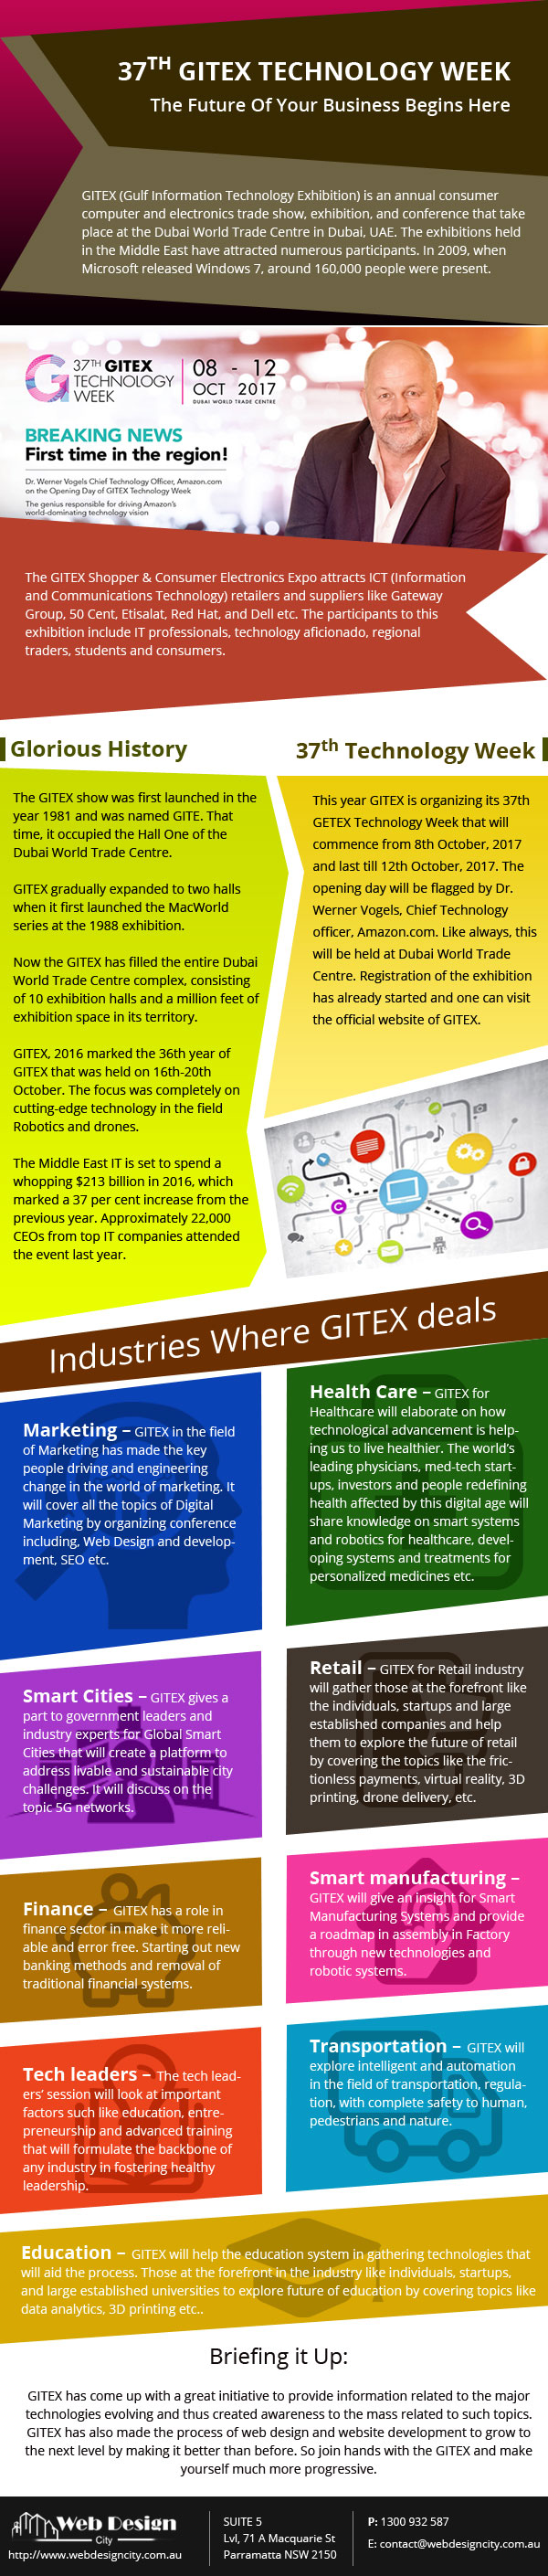 37TH GITEX TECHNOLOGY WEEK - The Future Of Your Business Begins Here